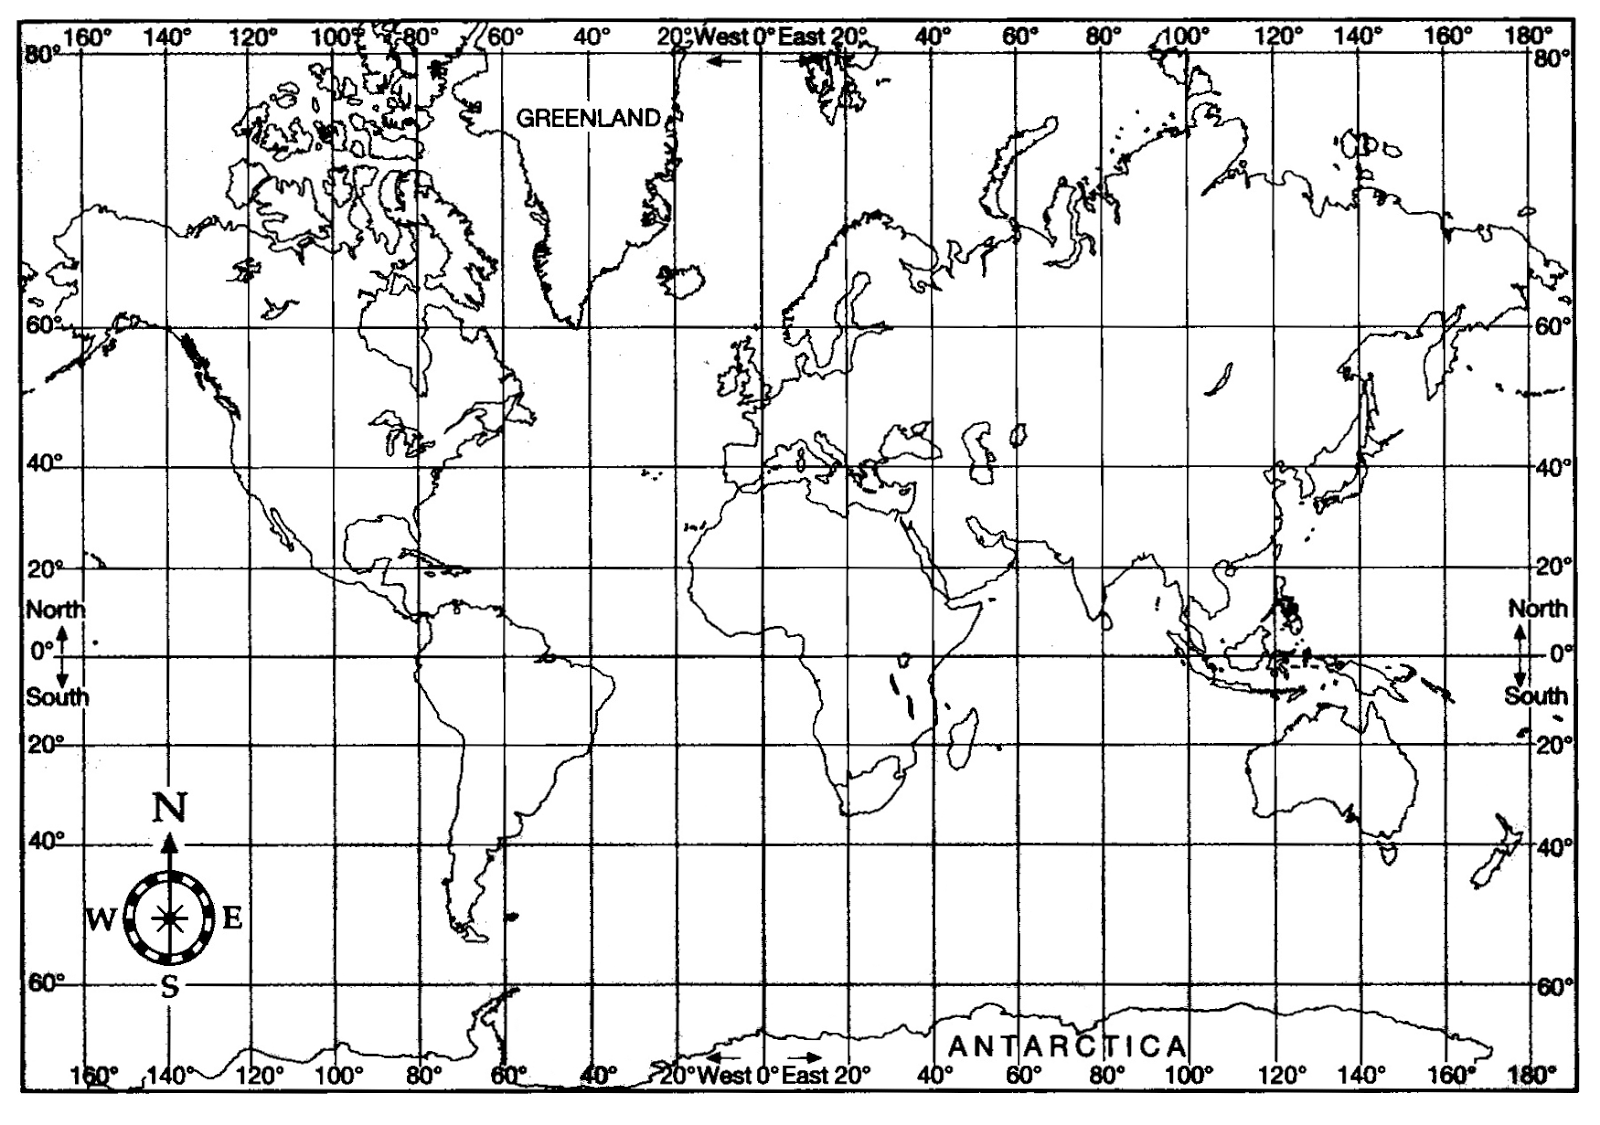 Dynamite image with world map with latitude and longitude printable